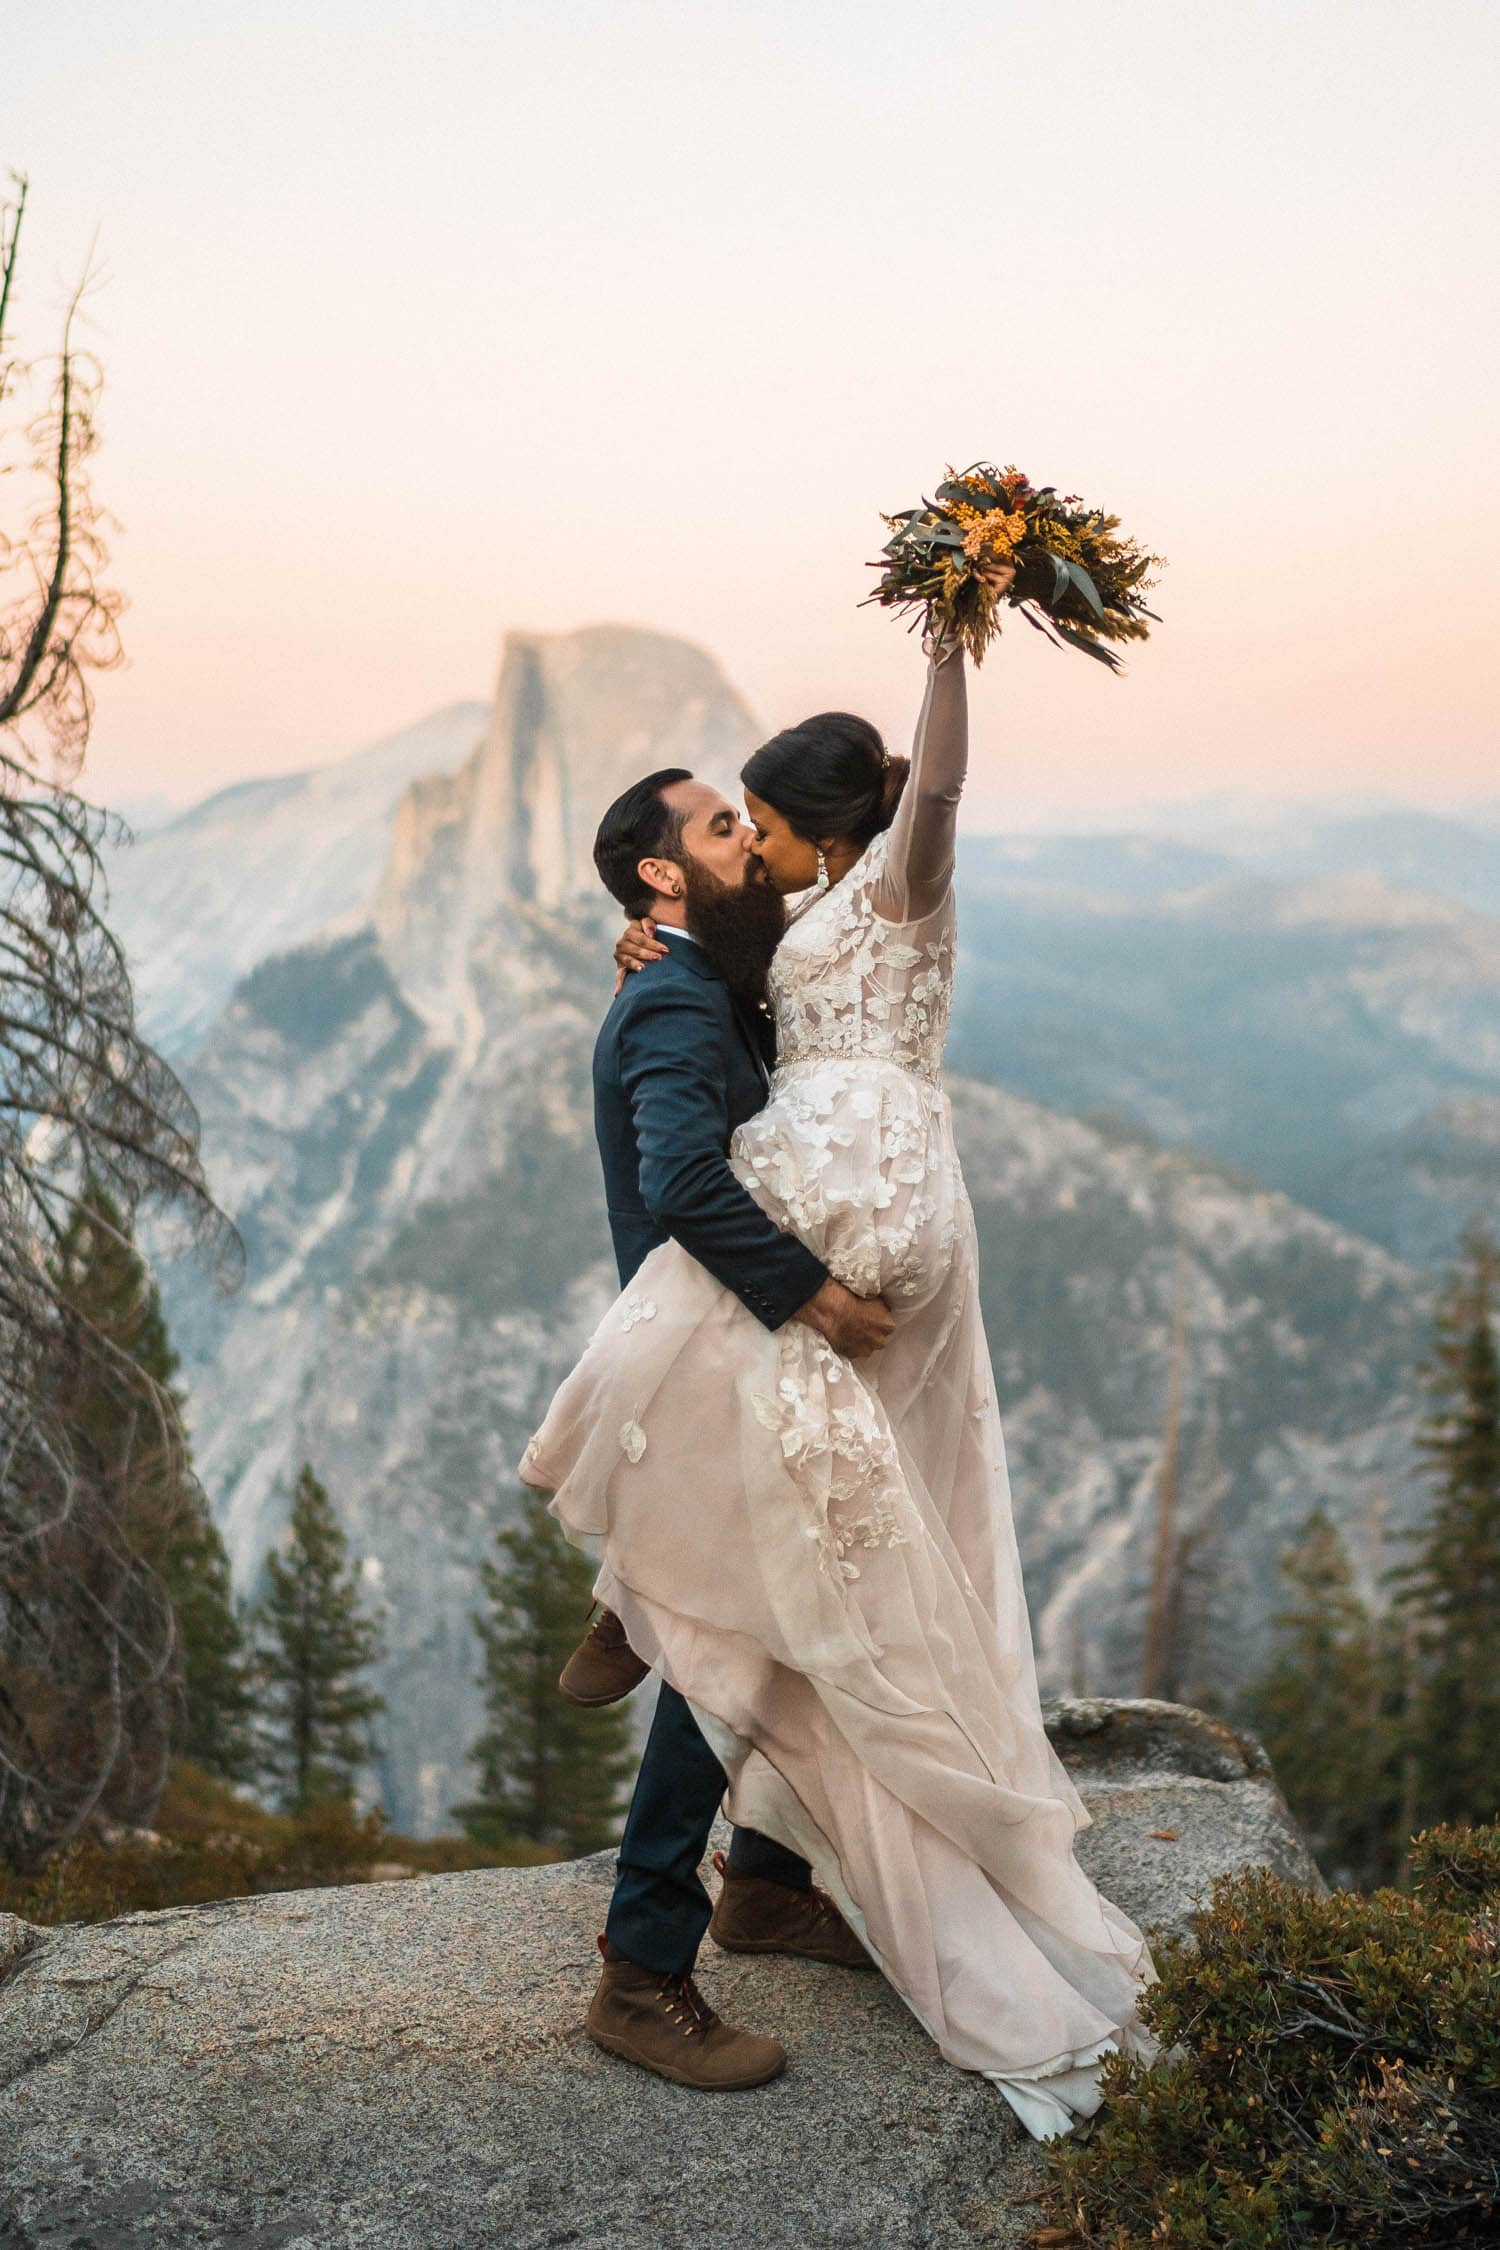 Bride and Groom Yosemite Elopement Guide and Packages